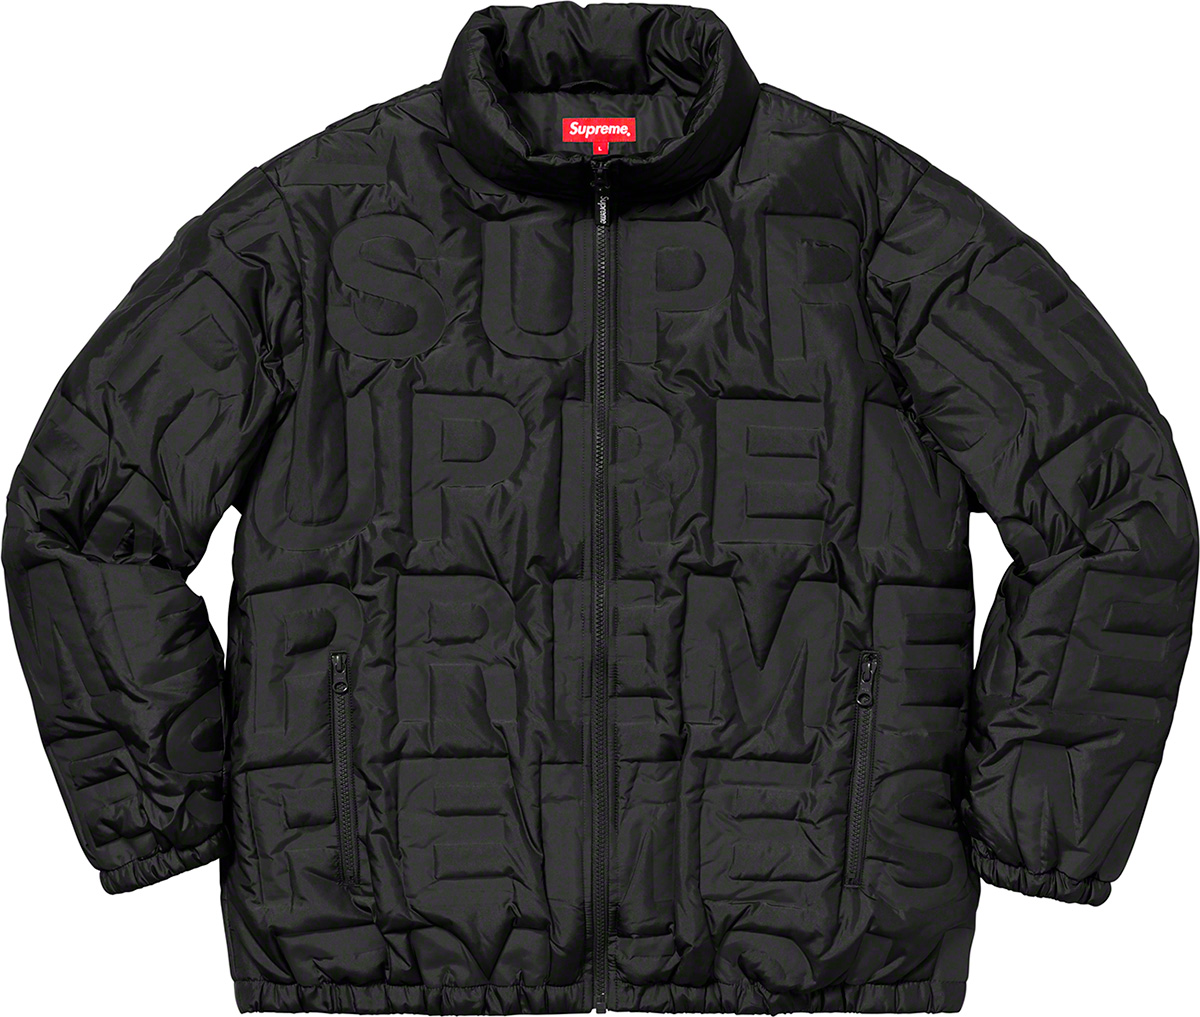 supreme-19ss-spring-summer-bonded-logo-puffy-jacket